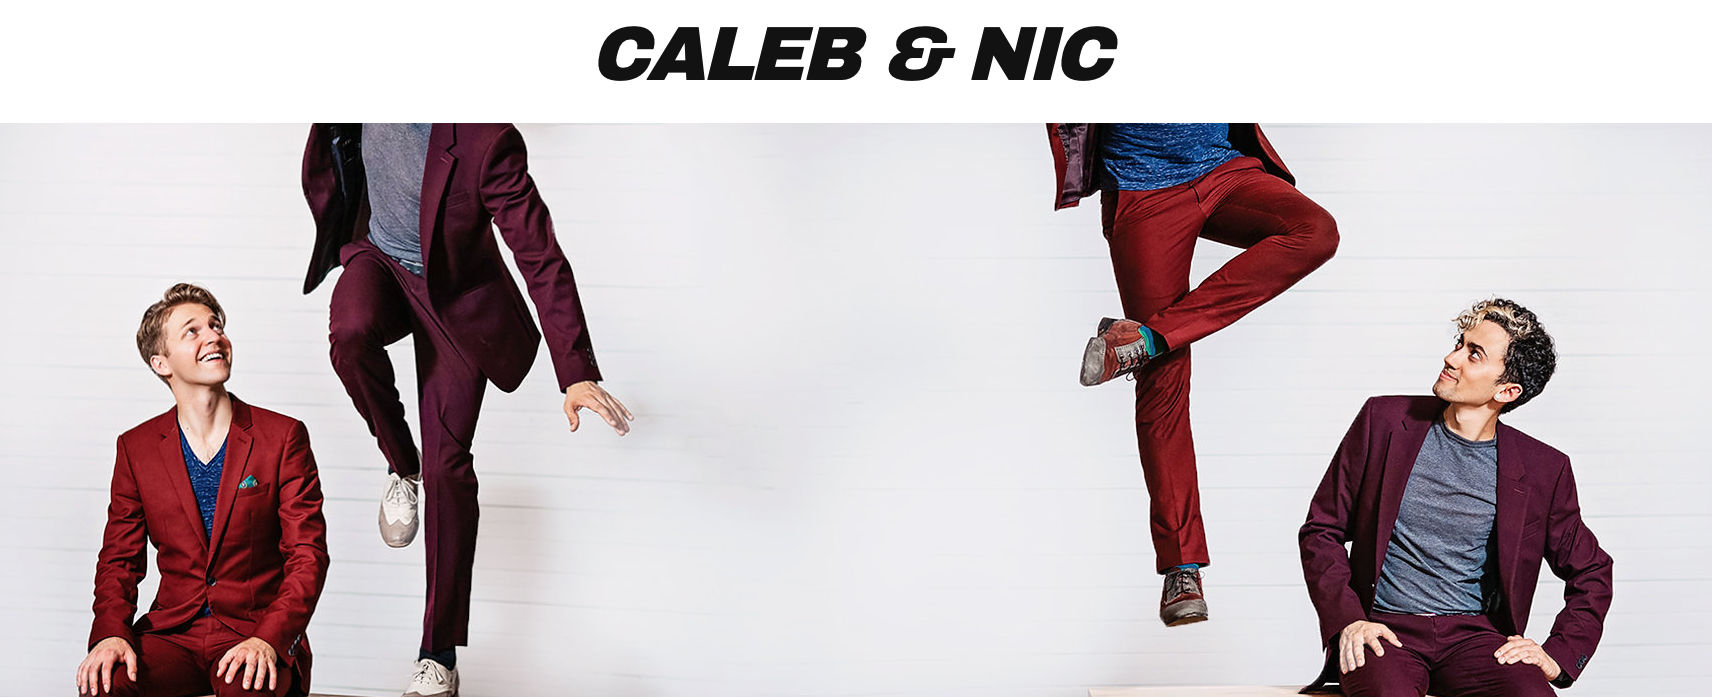 mirrored image of men in colorful suits jumping with Caleb & Nic written across the top